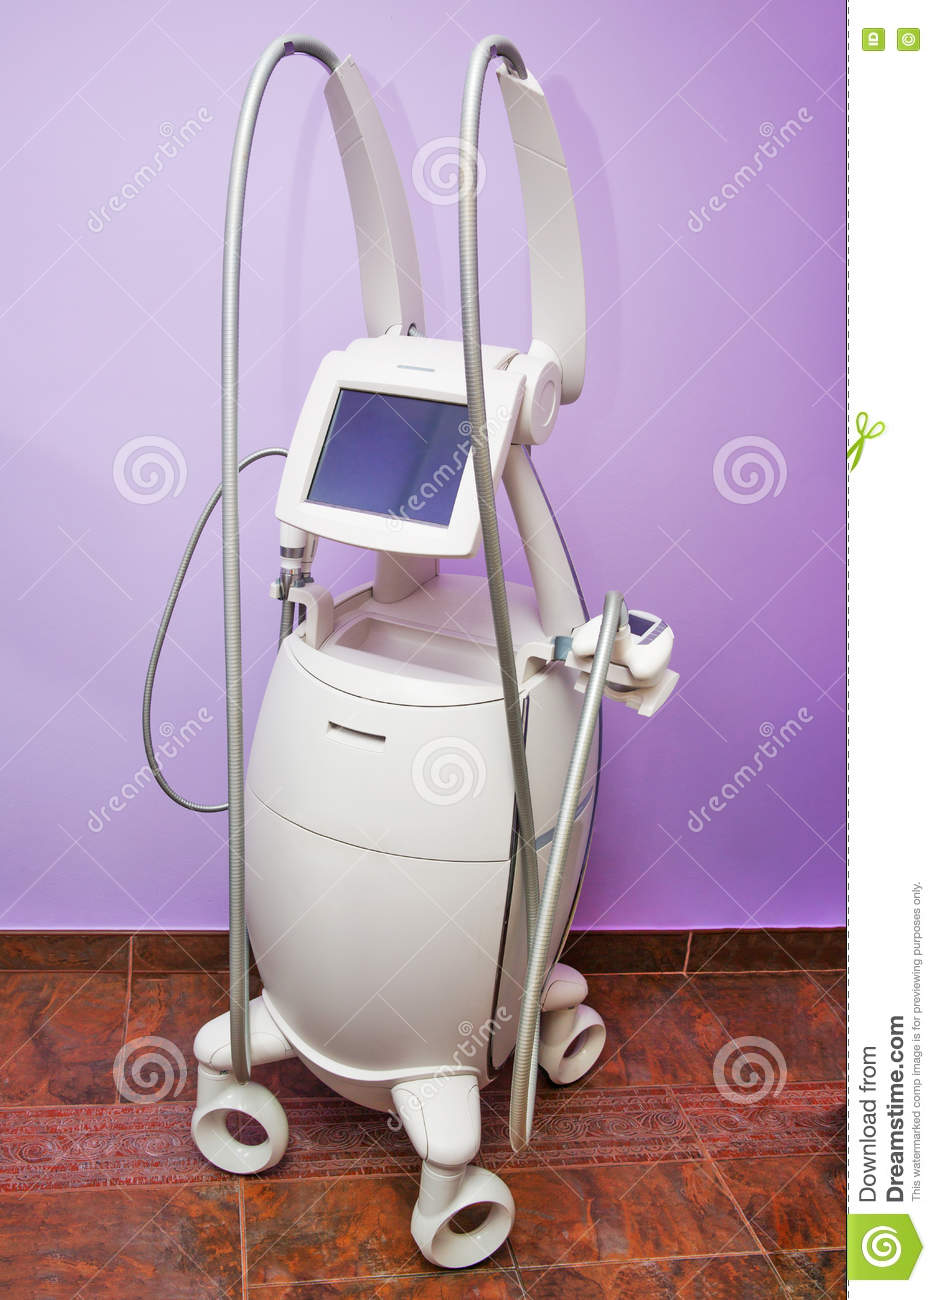 Medical equipment, lipo massage